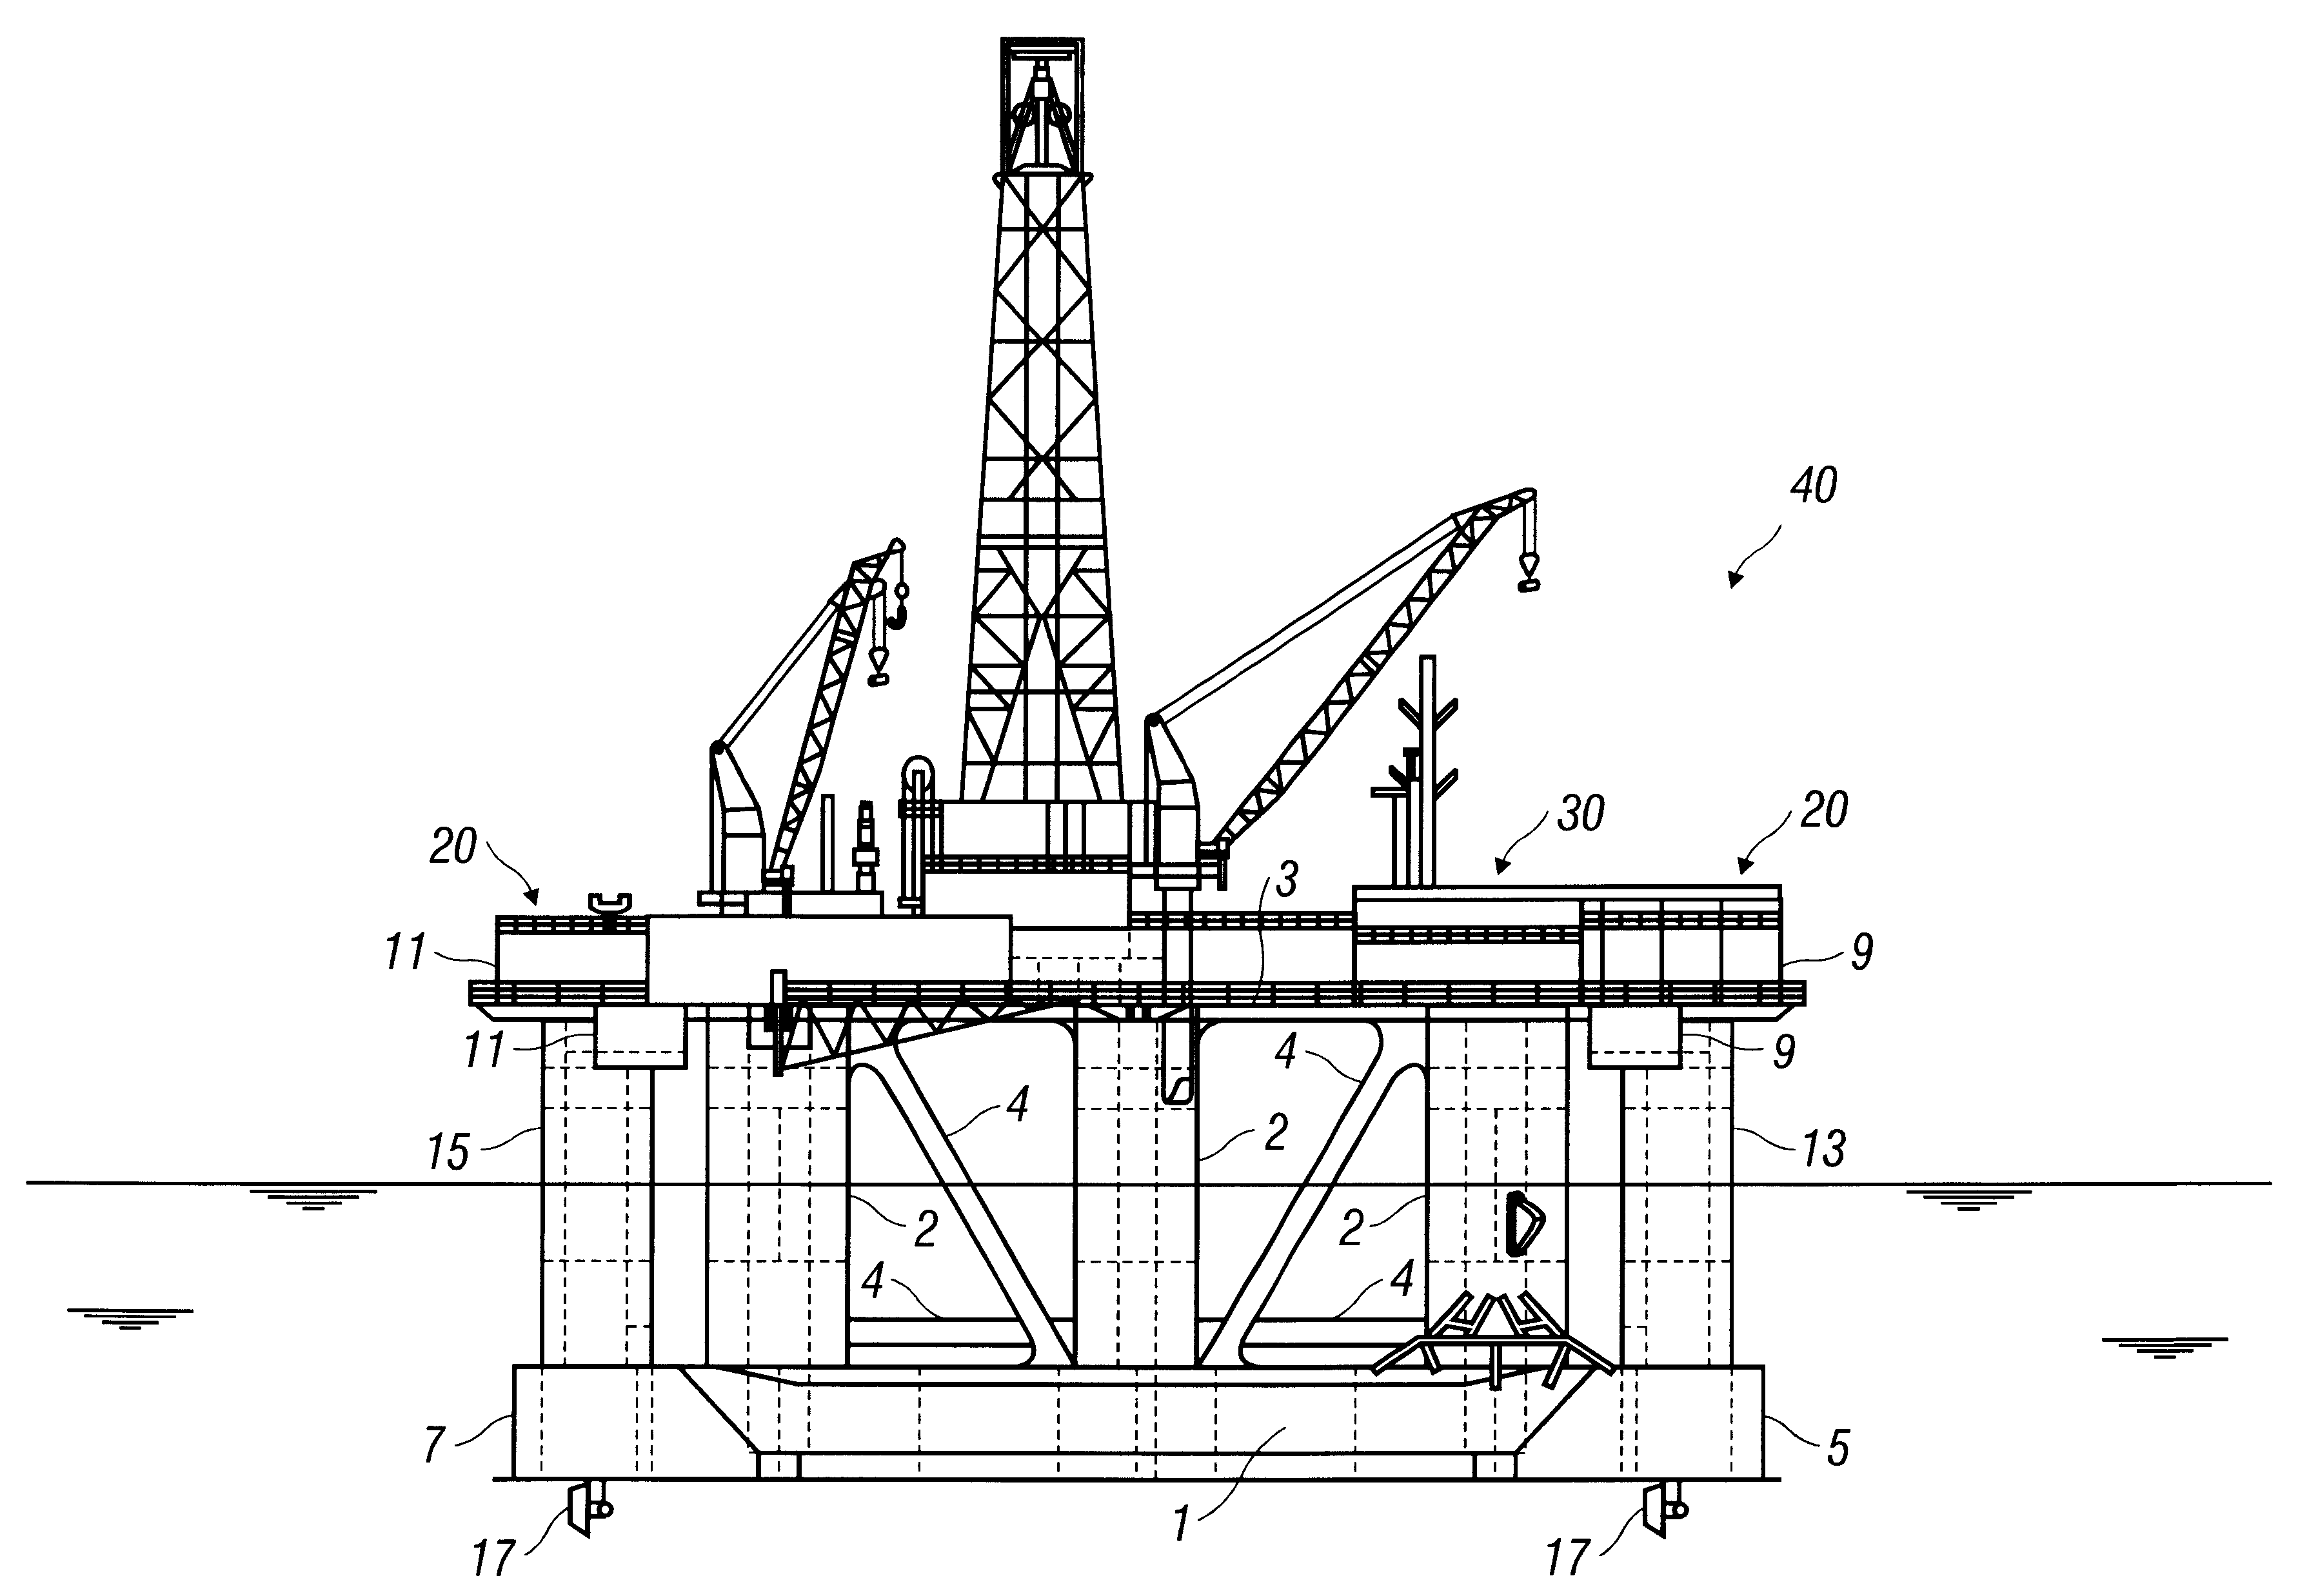 water well construction diagram